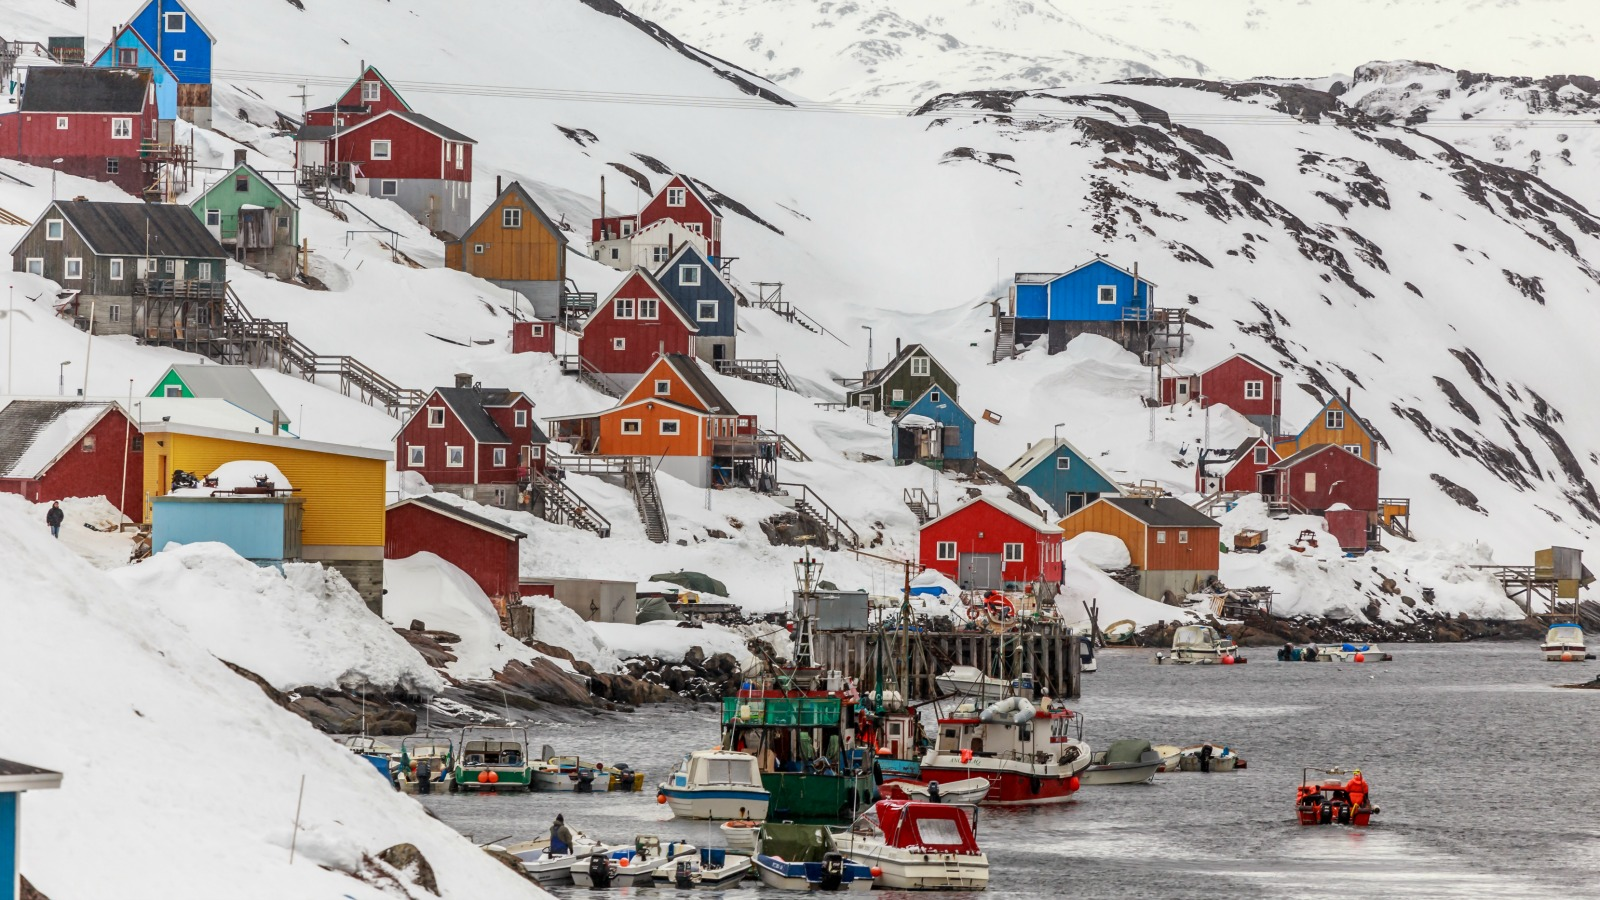 greenland-town-small